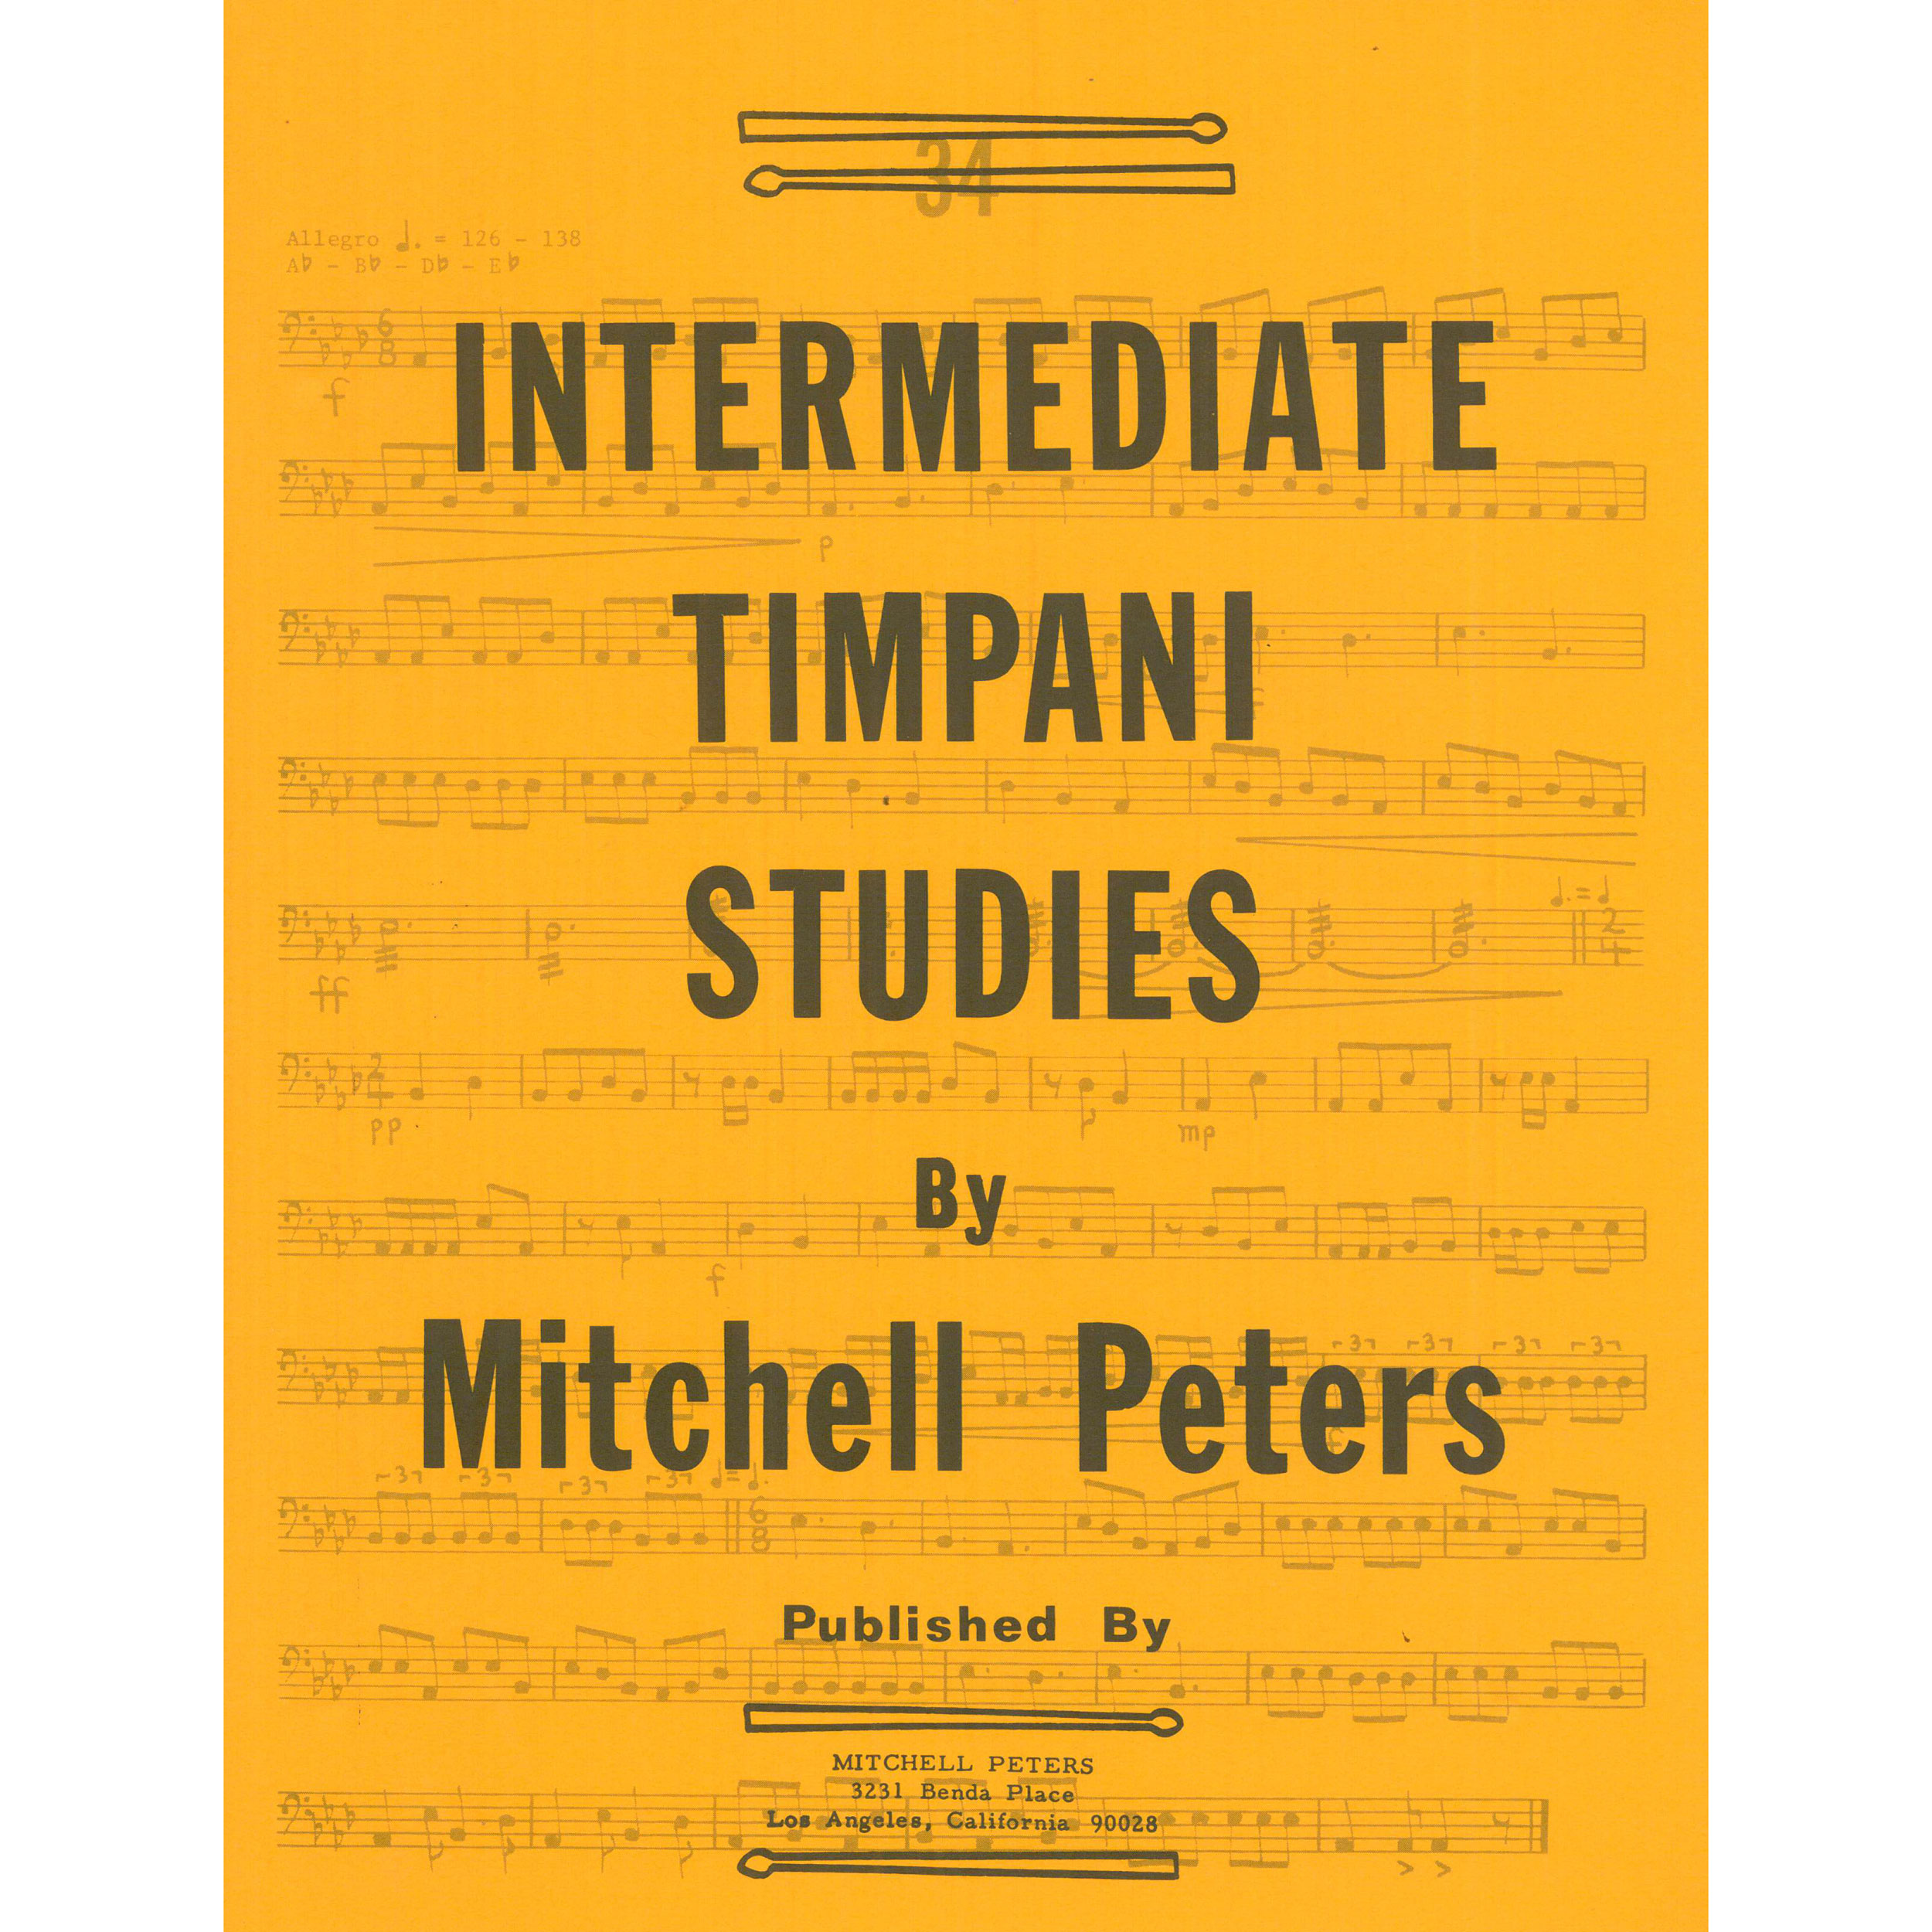 Intermediate Timpani Studies by Mitchell Peters